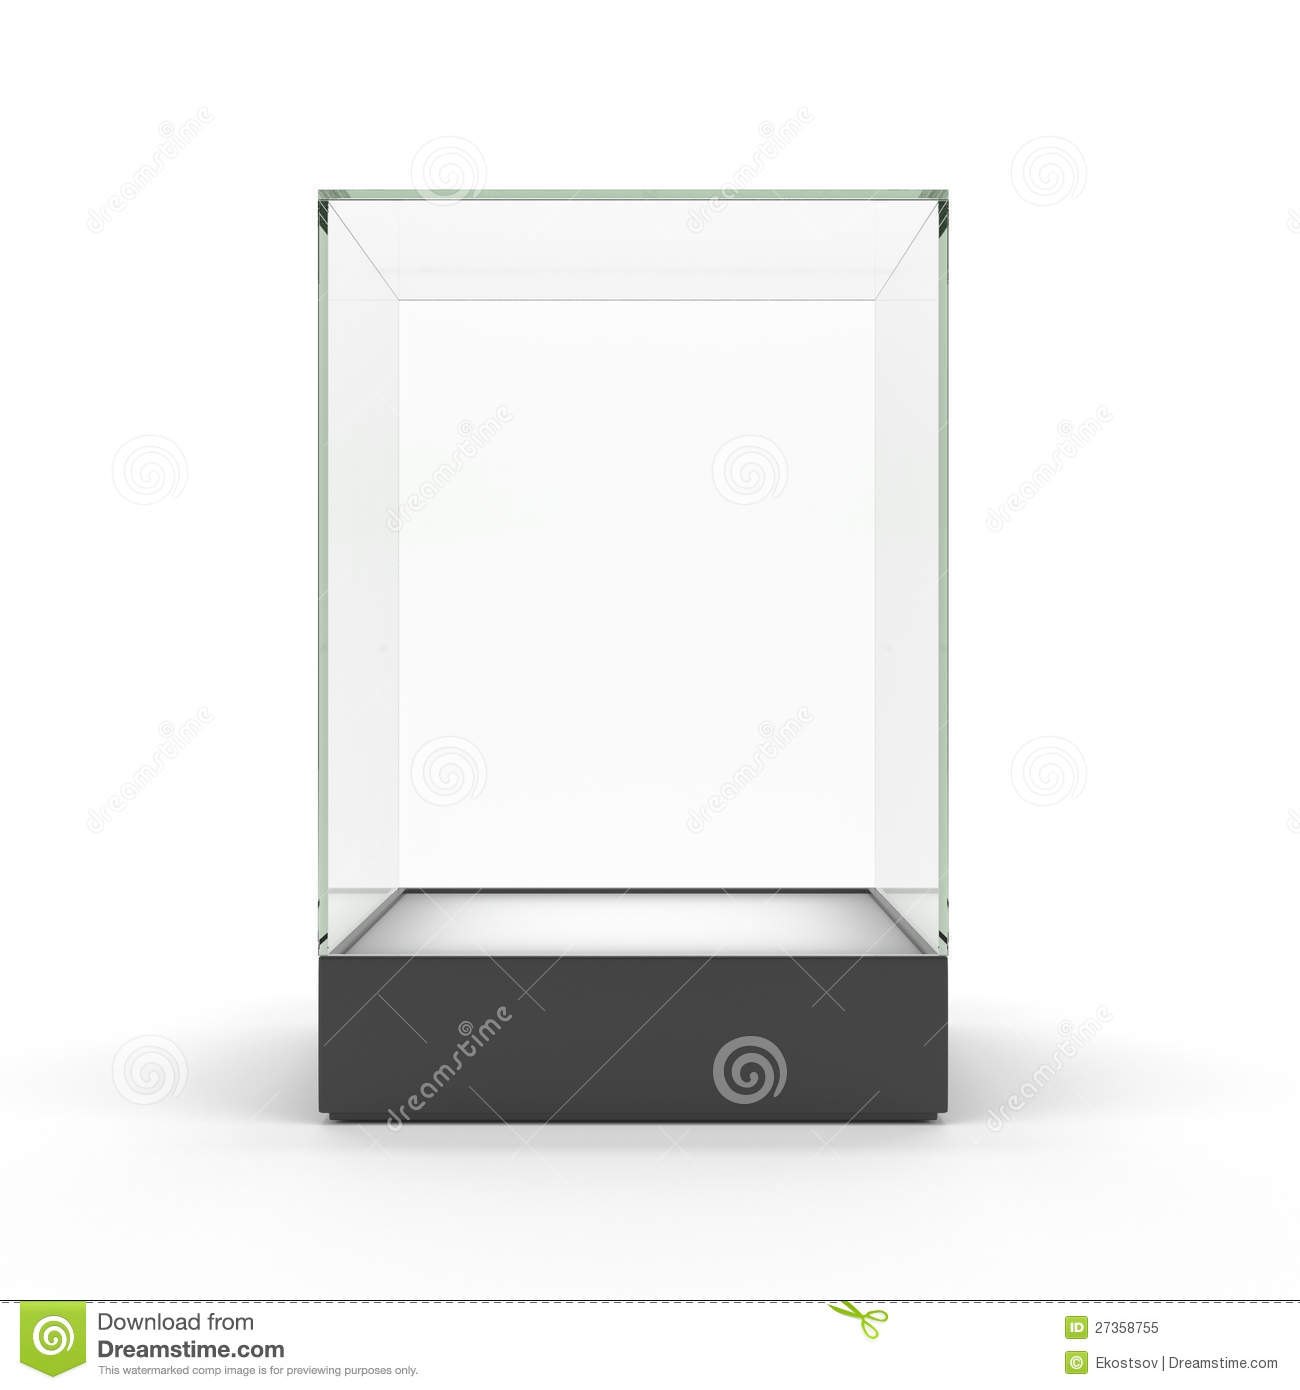 #83A526 Empty Glass Showcase For Exhibit Isolated Royalty Free  with 1300x1390 px of Best Glass Display Cases For Business 13901300 image @ avoidforclosure.info